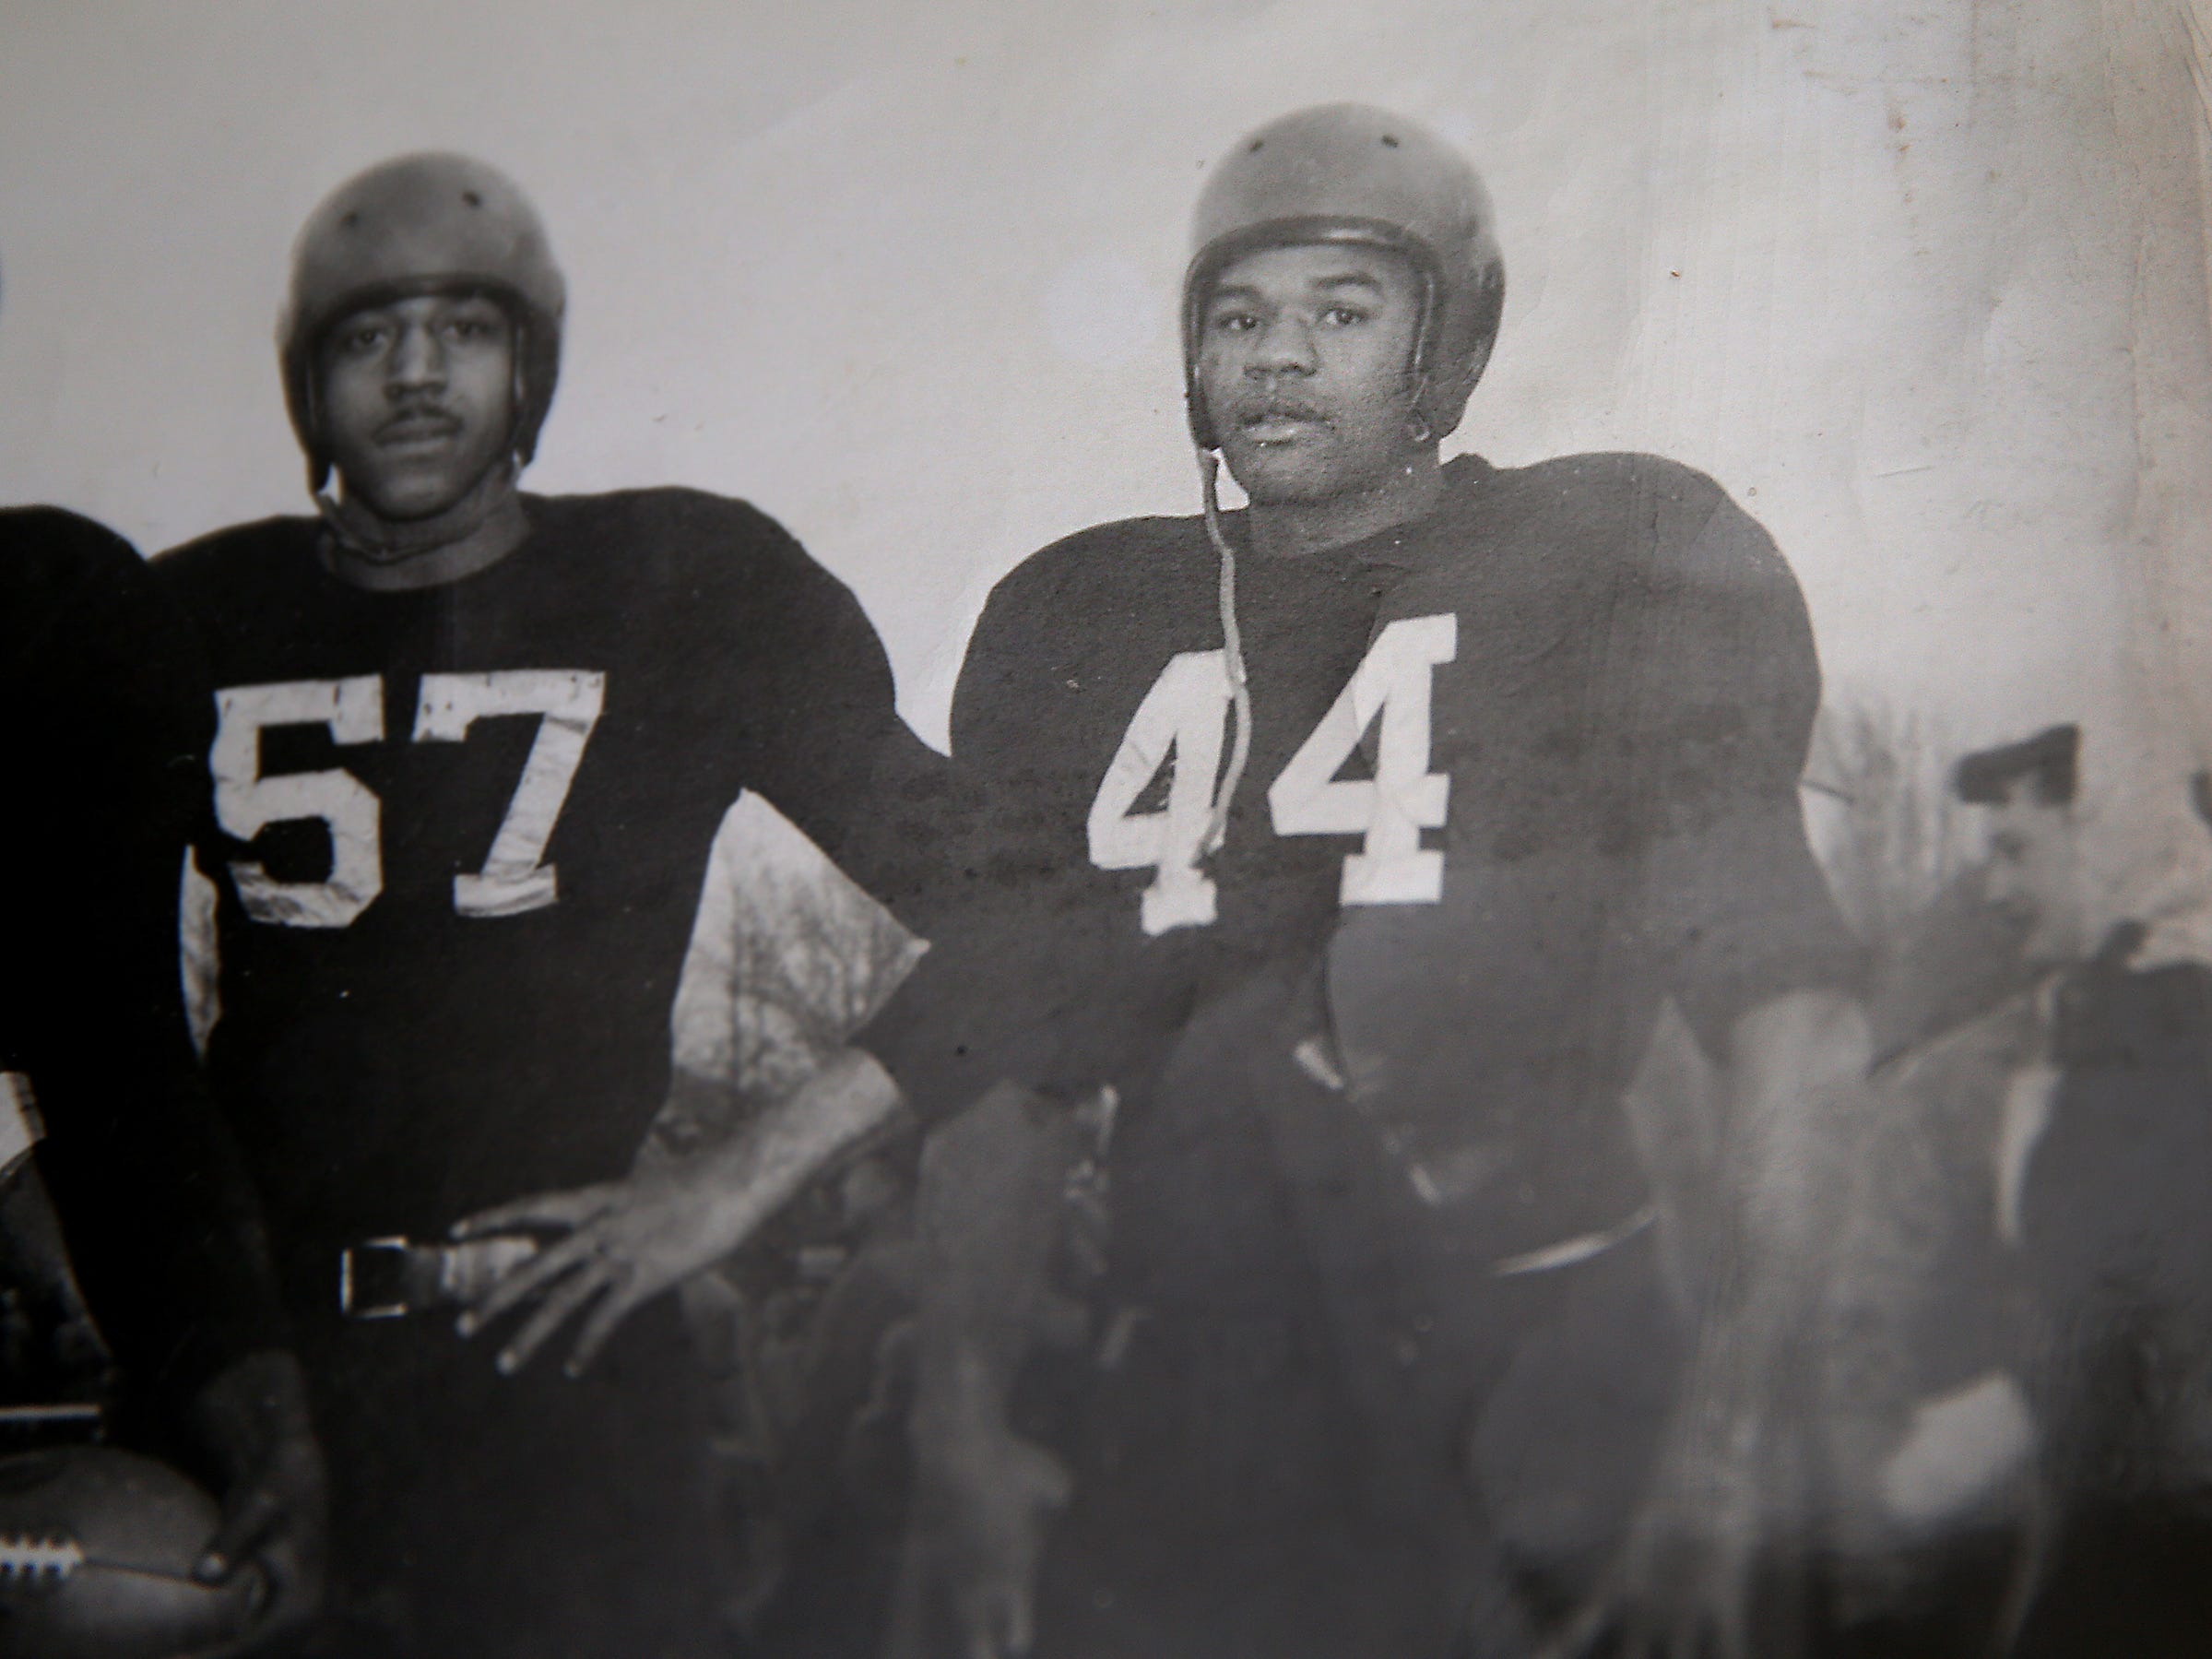 George Taliaferro, 91, former IU football star, was the first African-American drafted by an NFL team. Here is a submitted photo of him (#44) when he played for Indiana University.